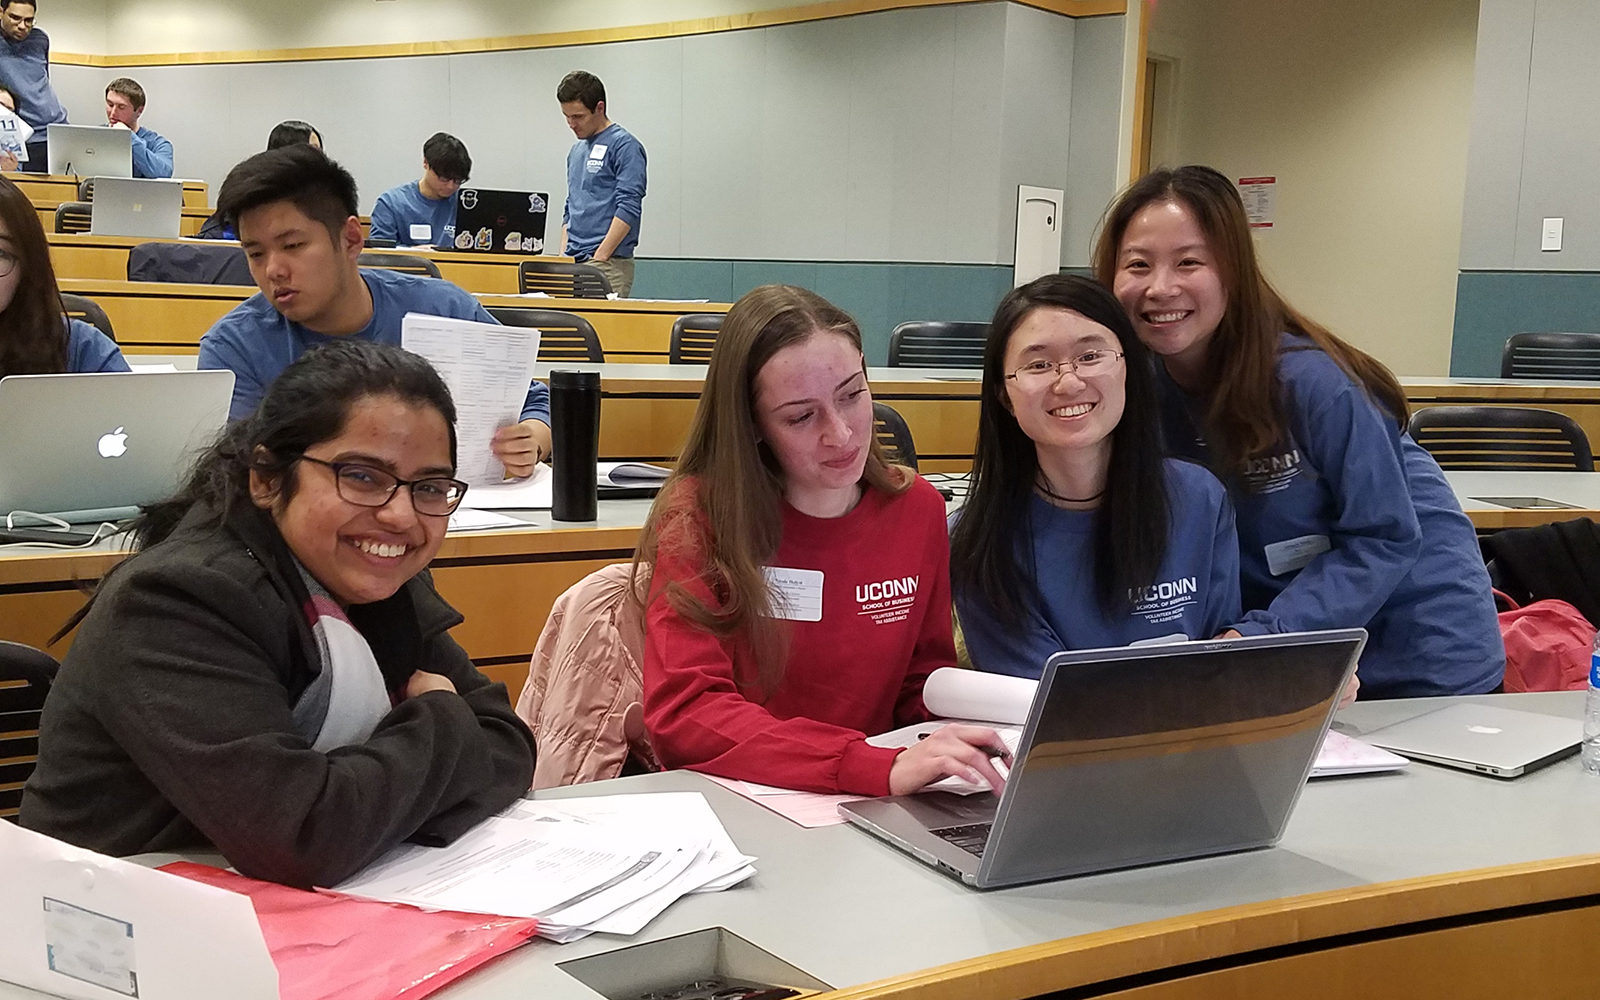 Volunteers prepared taxes for over 700 people this year in the VITA Program.  From left, graduate student Debadarshini Mishra, second-year reviewer Nicole Holyst and first-year preparers Jenny Wei and Qingya Yang.